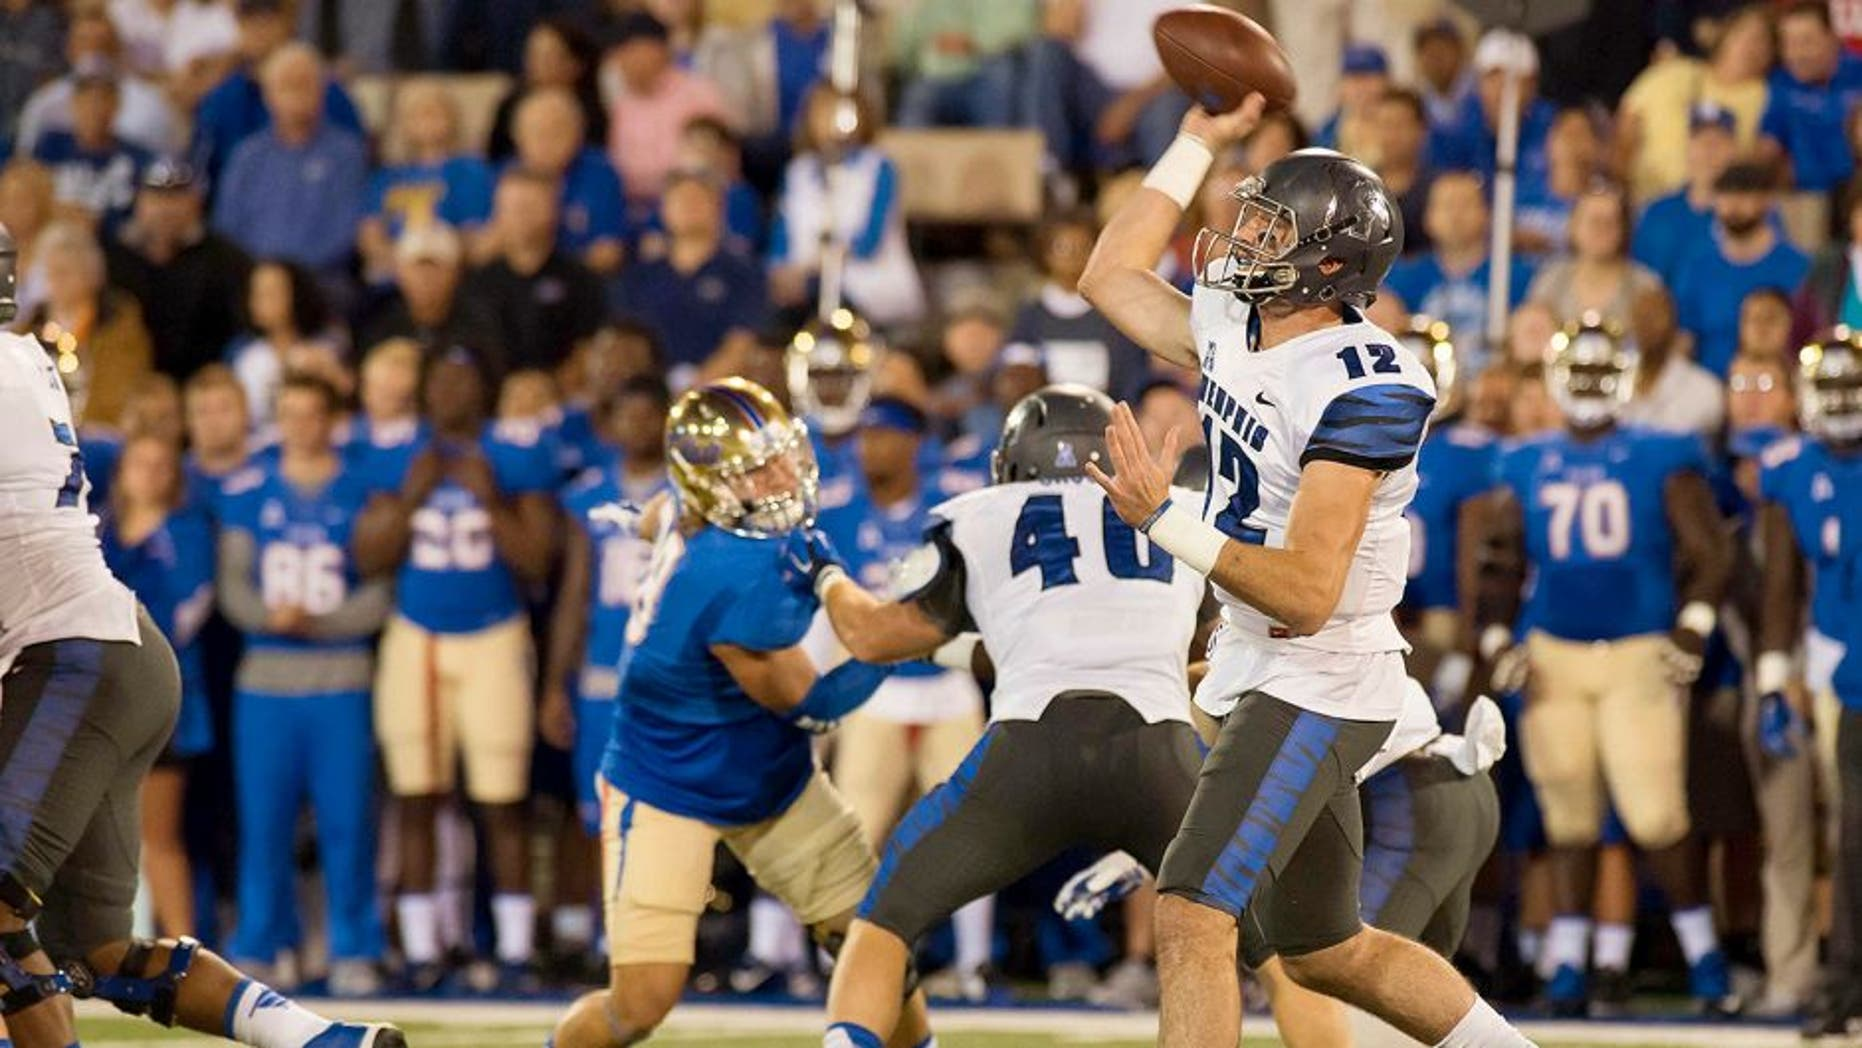 Oct 23, 2015; Tulsa, OK, USA; Memphis Tigers quarterback Paxton Lynch (12) throws the ball against the Tulsa Golden Hurricane during the first quarter at Skelly Field at H.A. Chapman Stadium. Mandatory Credit: Rob Ferguson-USA TODAY Sports